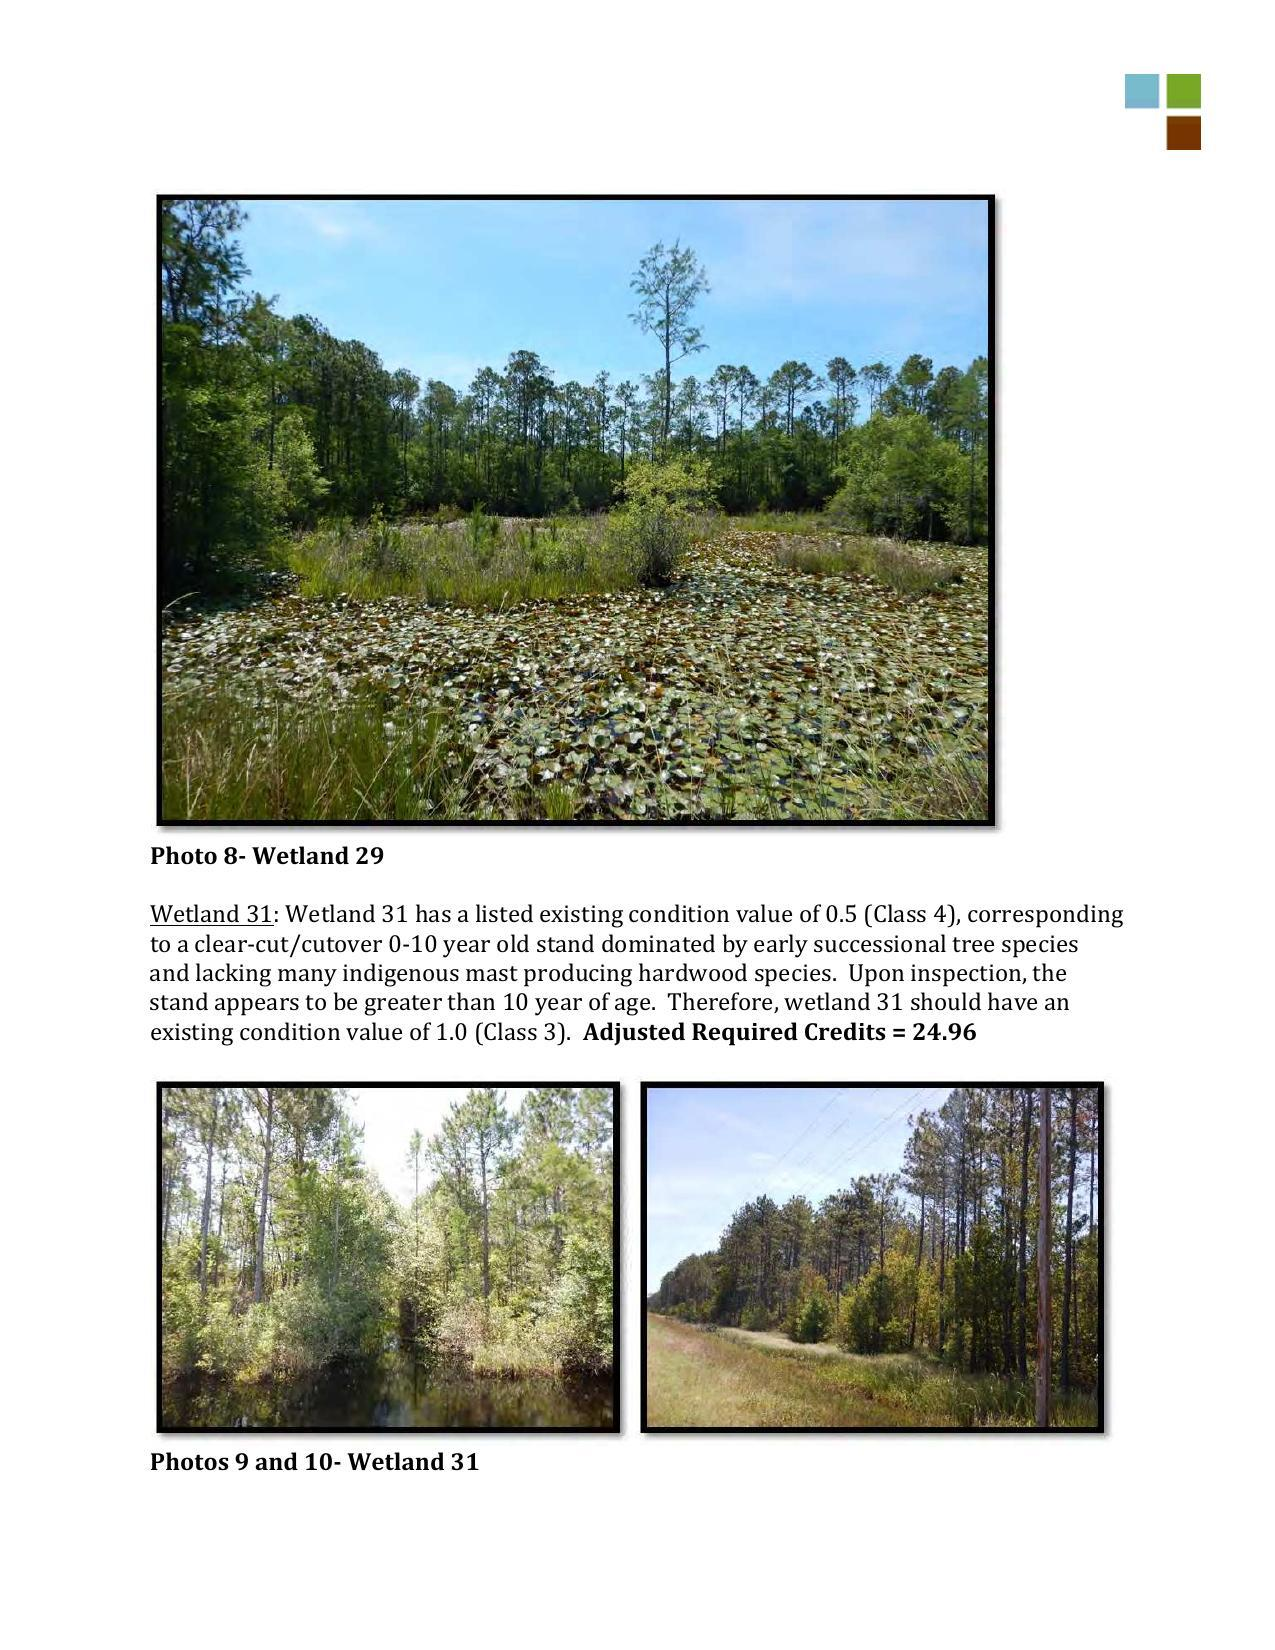 1275x1650 Wetlands 29 and 31, in RE: SAS-2014-00862, Proposed U.S. Highway 84 Widening, by Gilbert B. Rogers, for WWALS.net, 28 May 2015